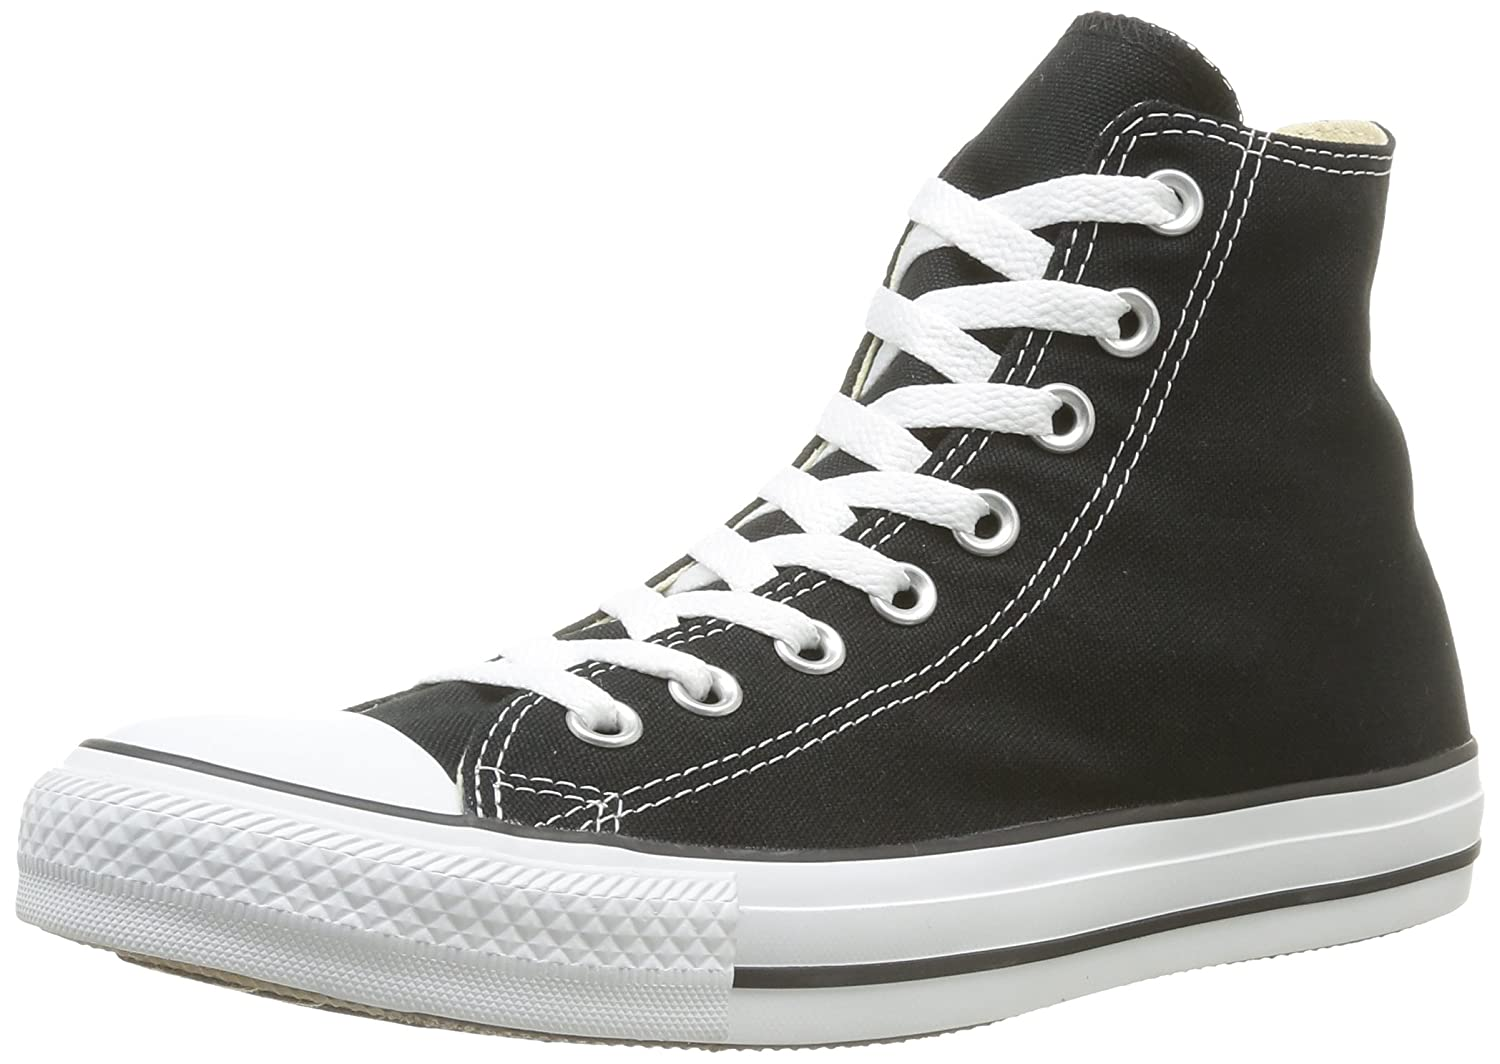 Converse Chuck Taylor All Star High Top Sneakers midi dj контроллер behringer cmd studio 4a